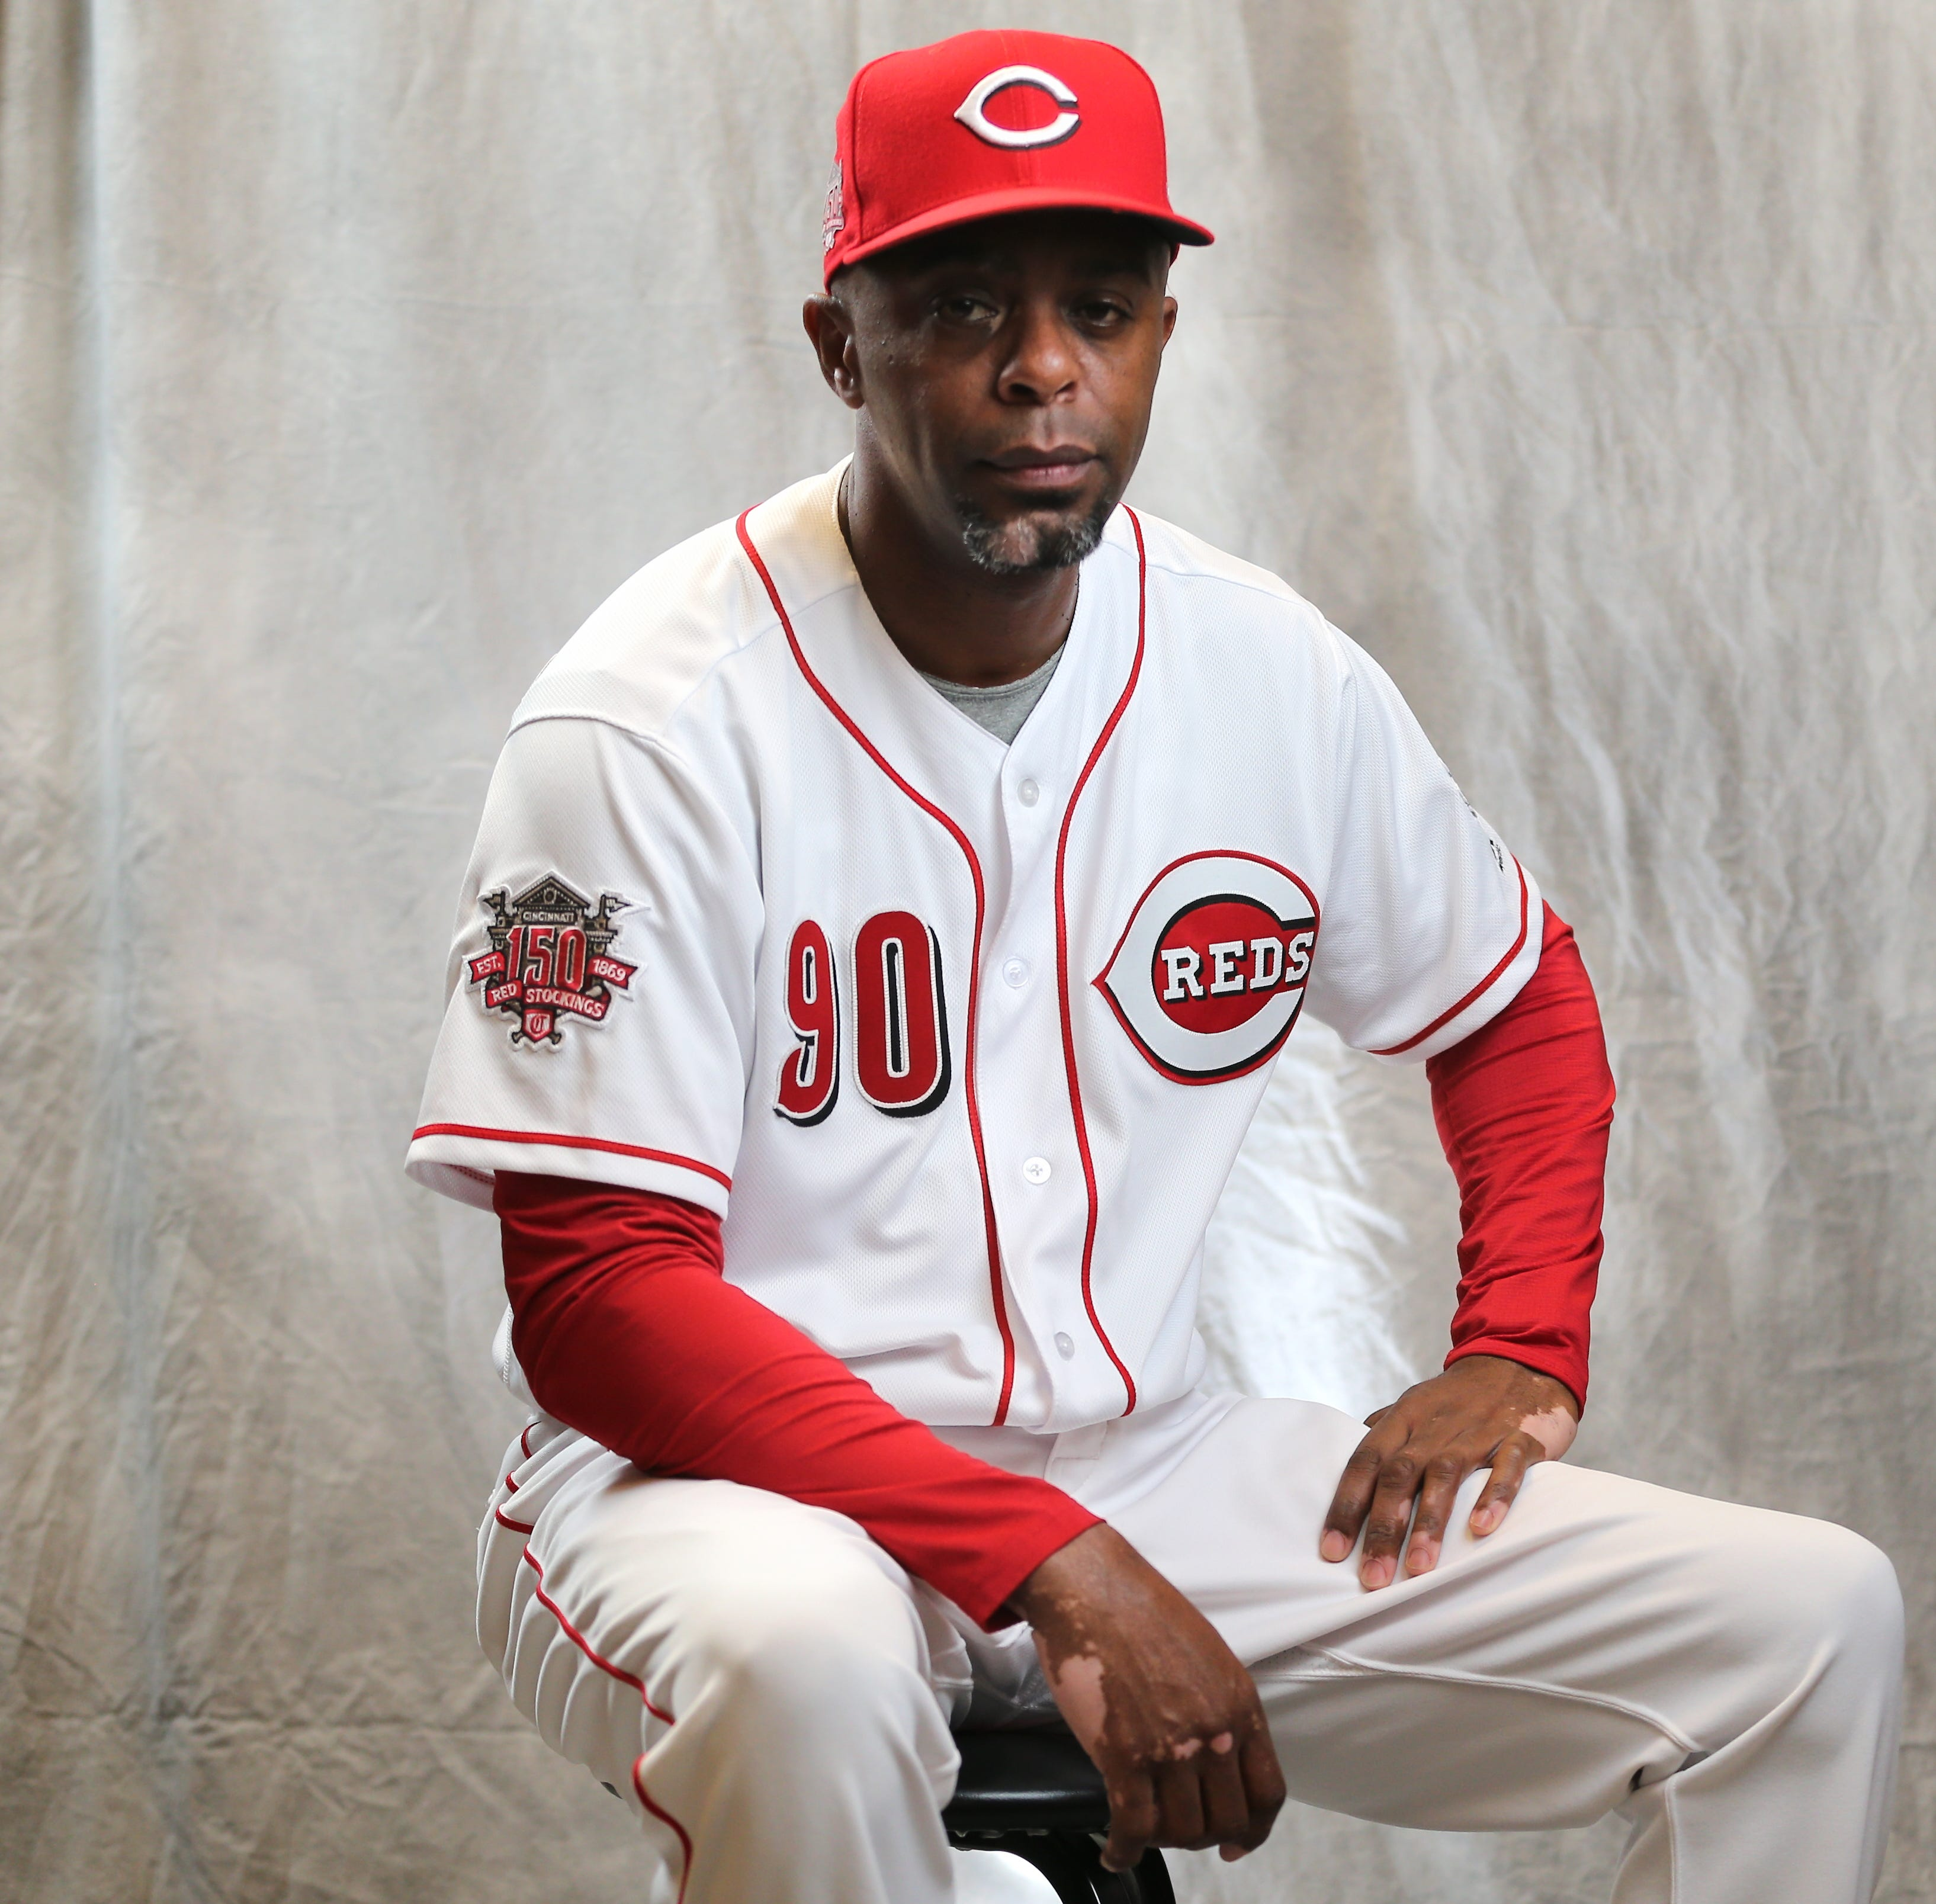 Cincinnati Reds first-base coach Delino DeShields enjoys father-son moment